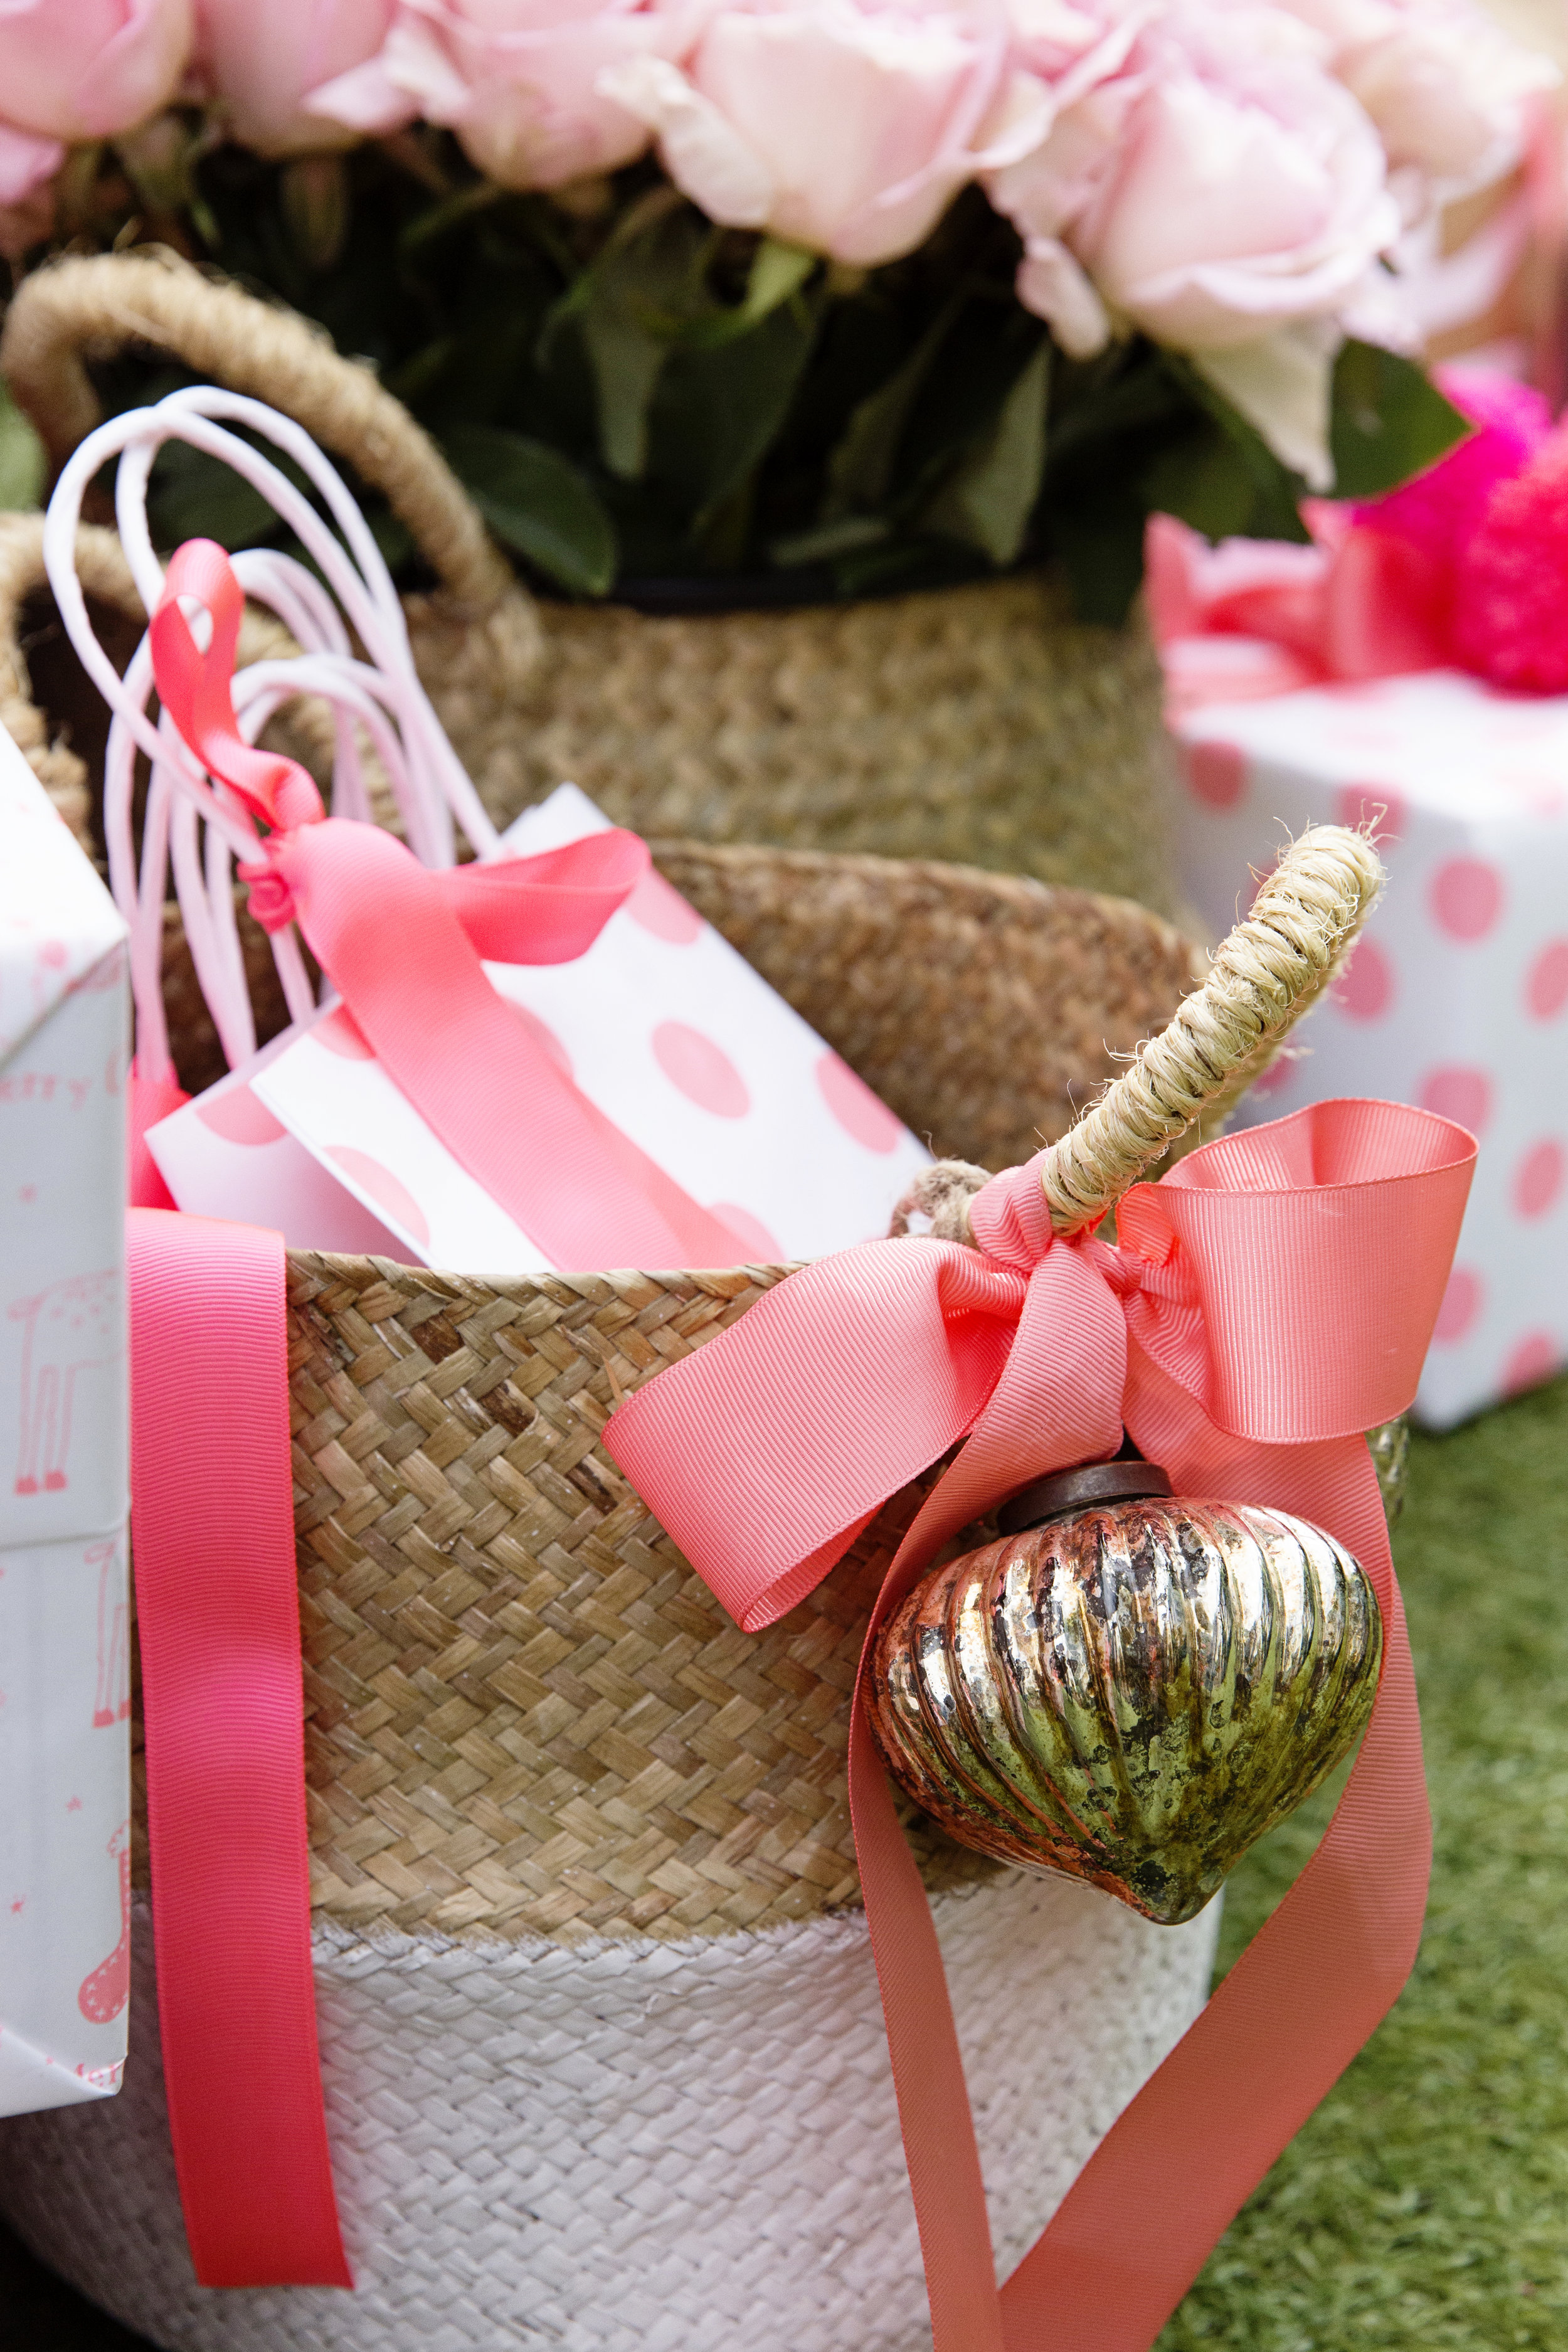 Gift Wrapping 063.JPG